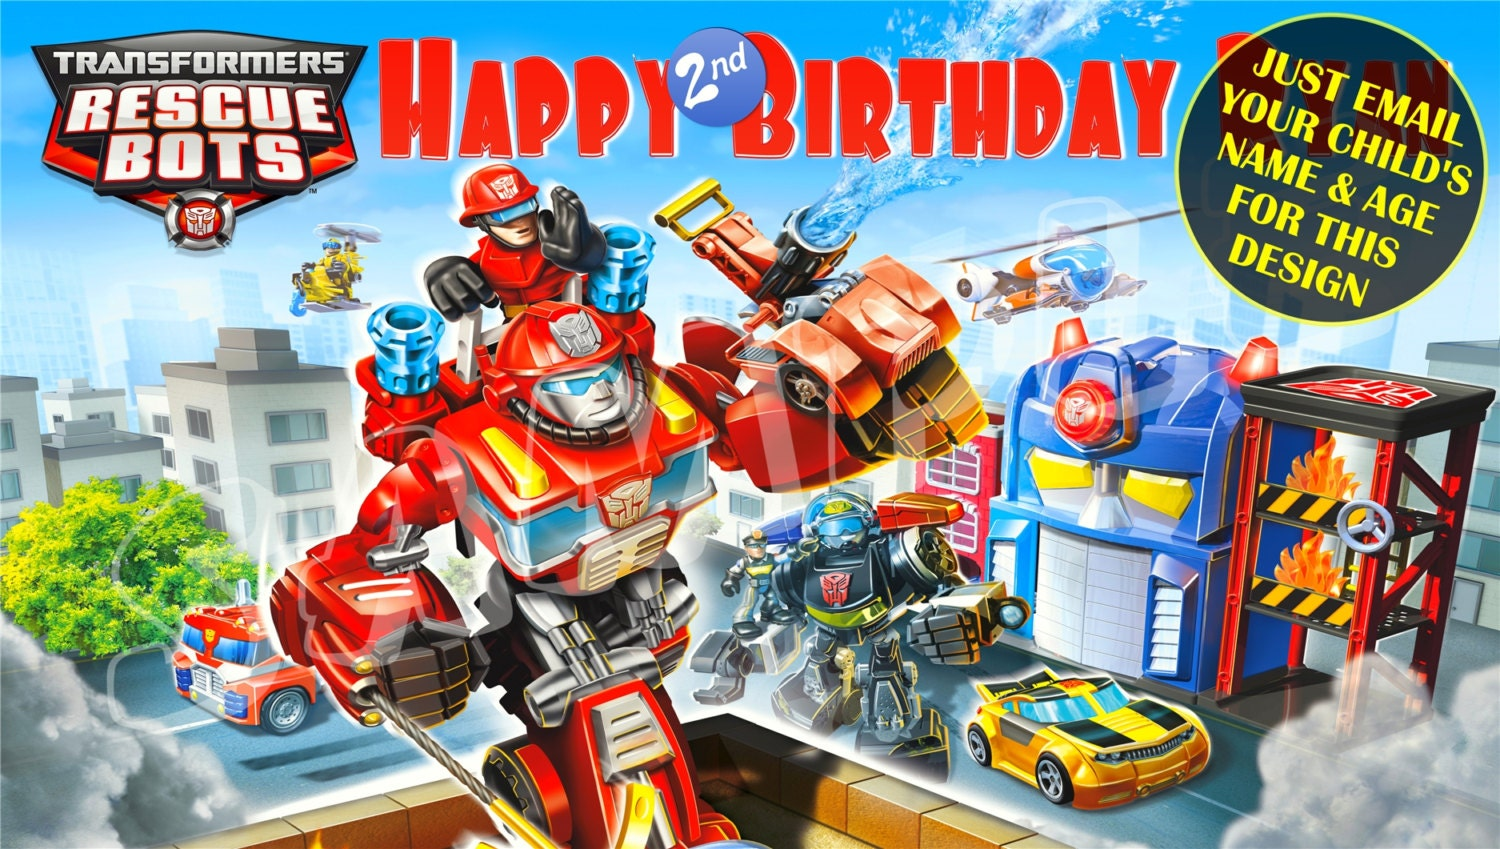 Transformers Rescue Bots Personalized Birthday Banner with